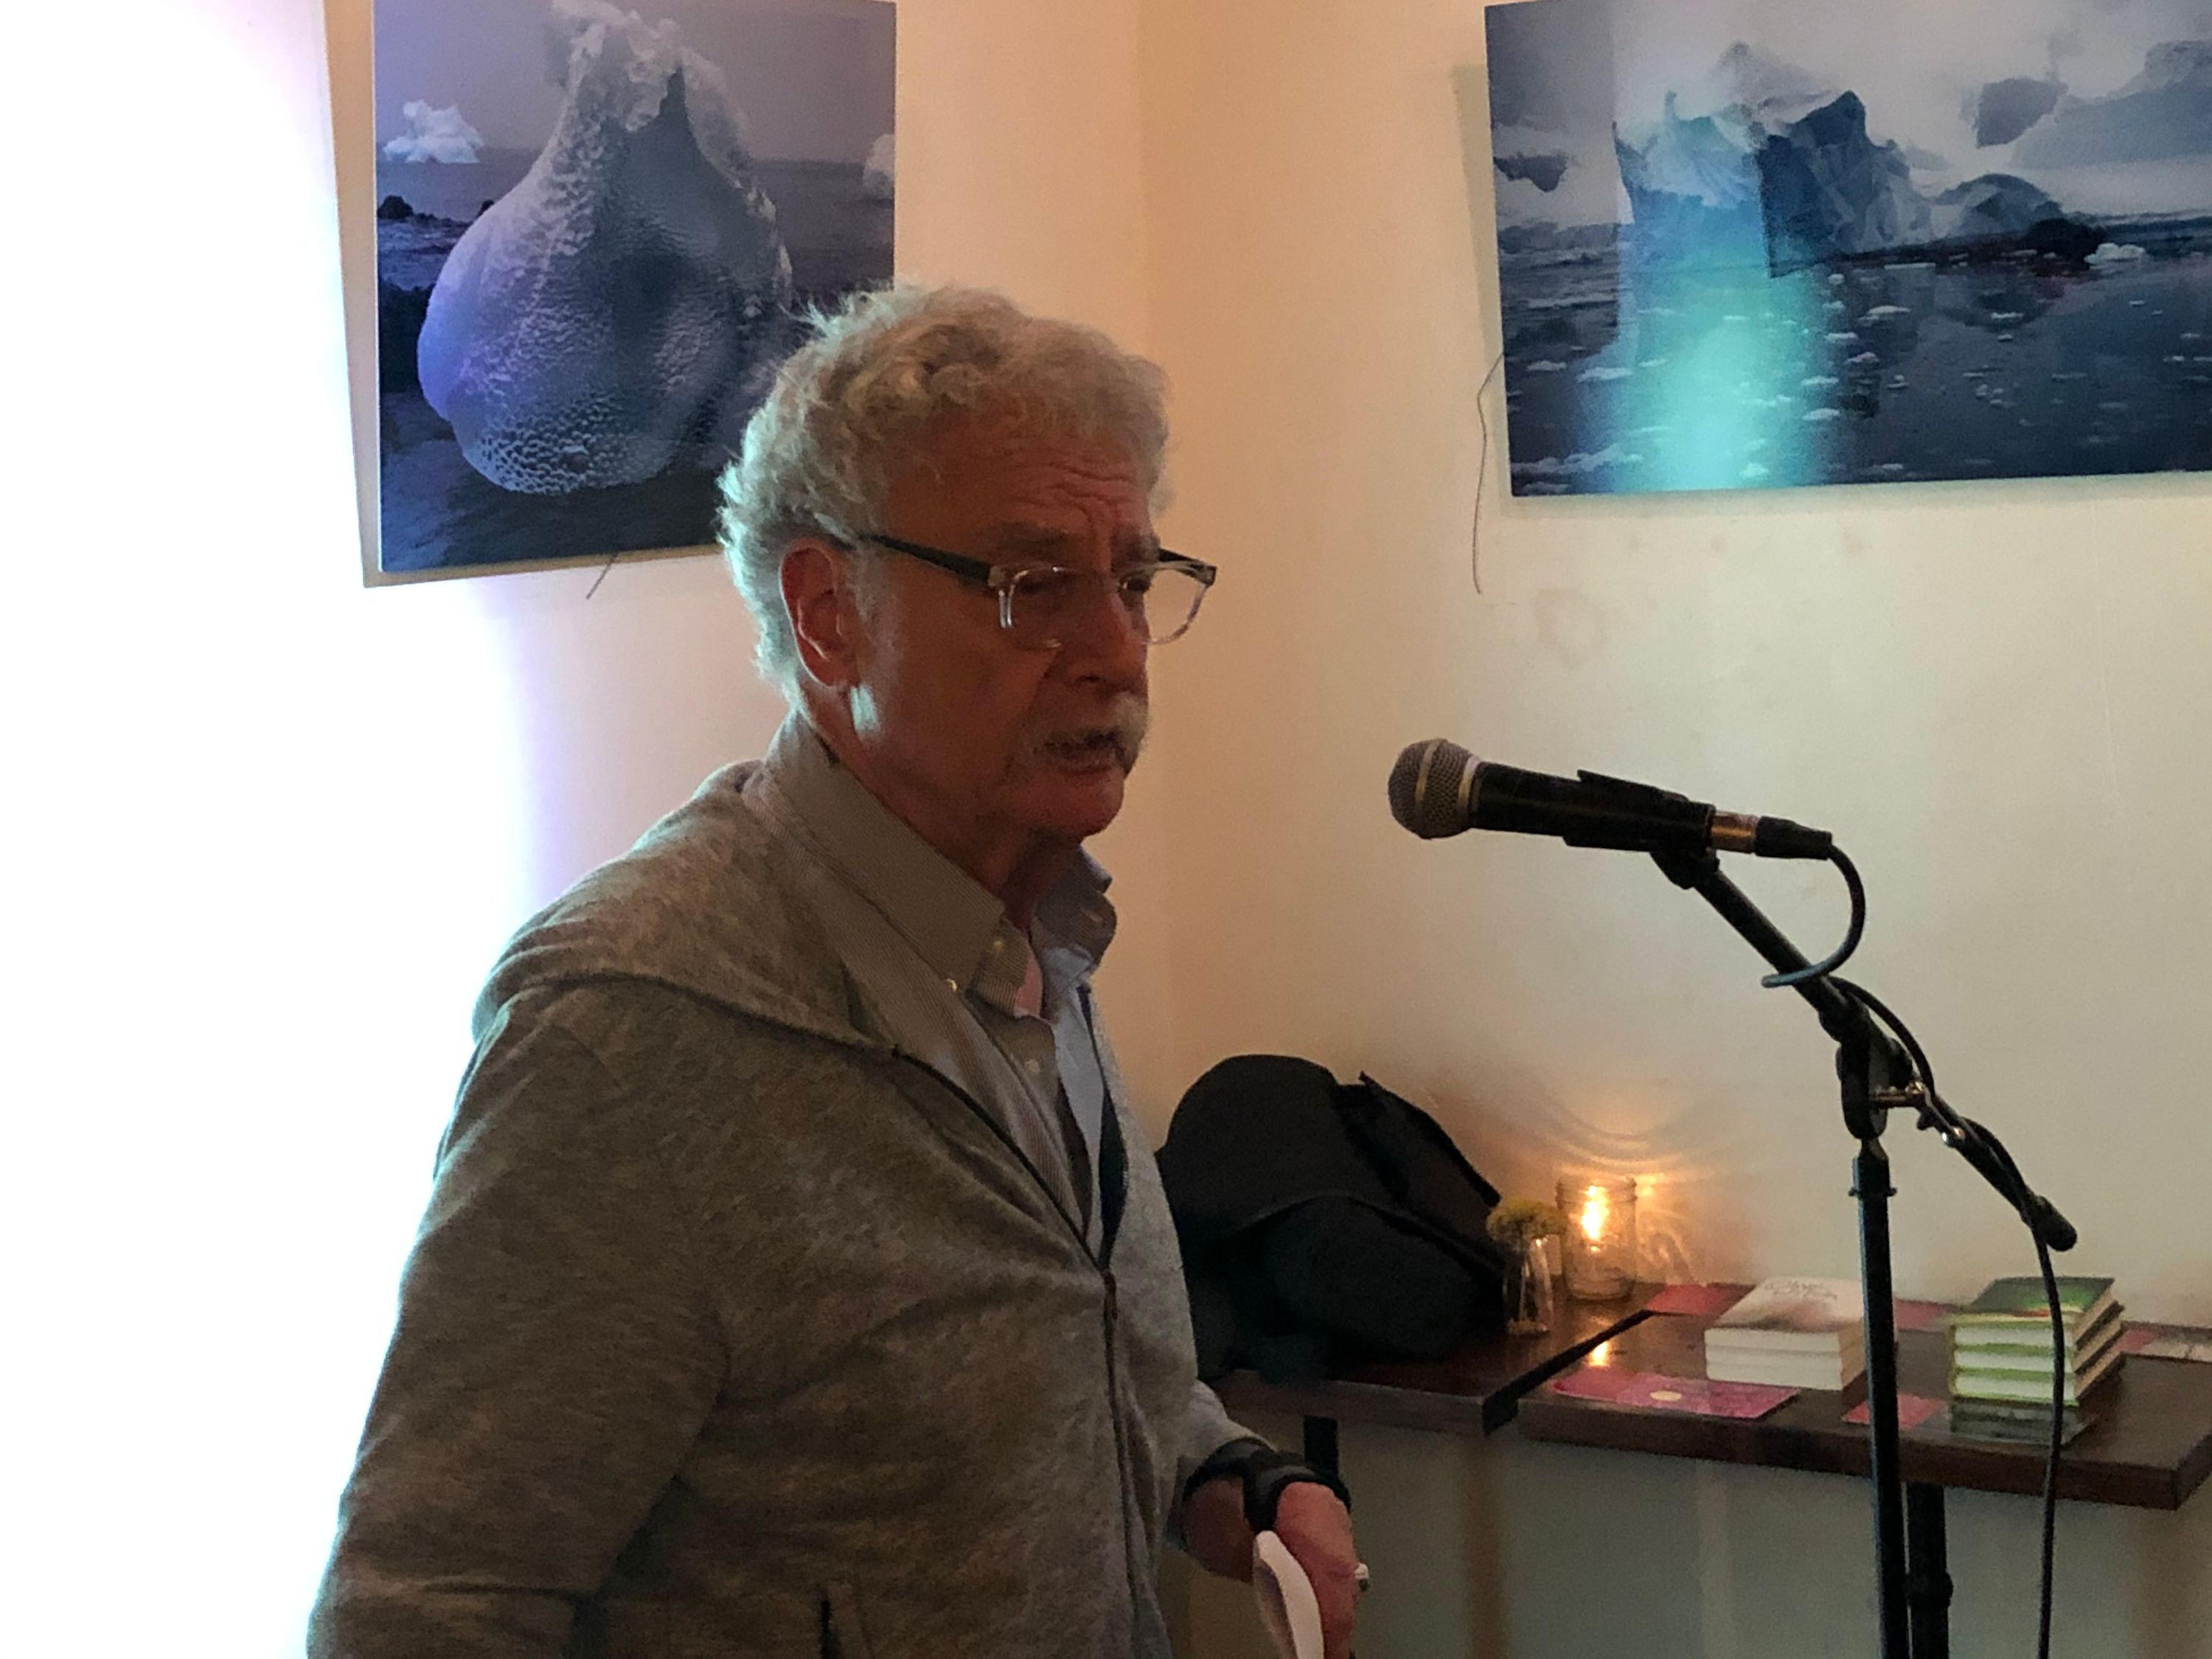 henry sussman at the first tuesdays open mic - oct 1 2019